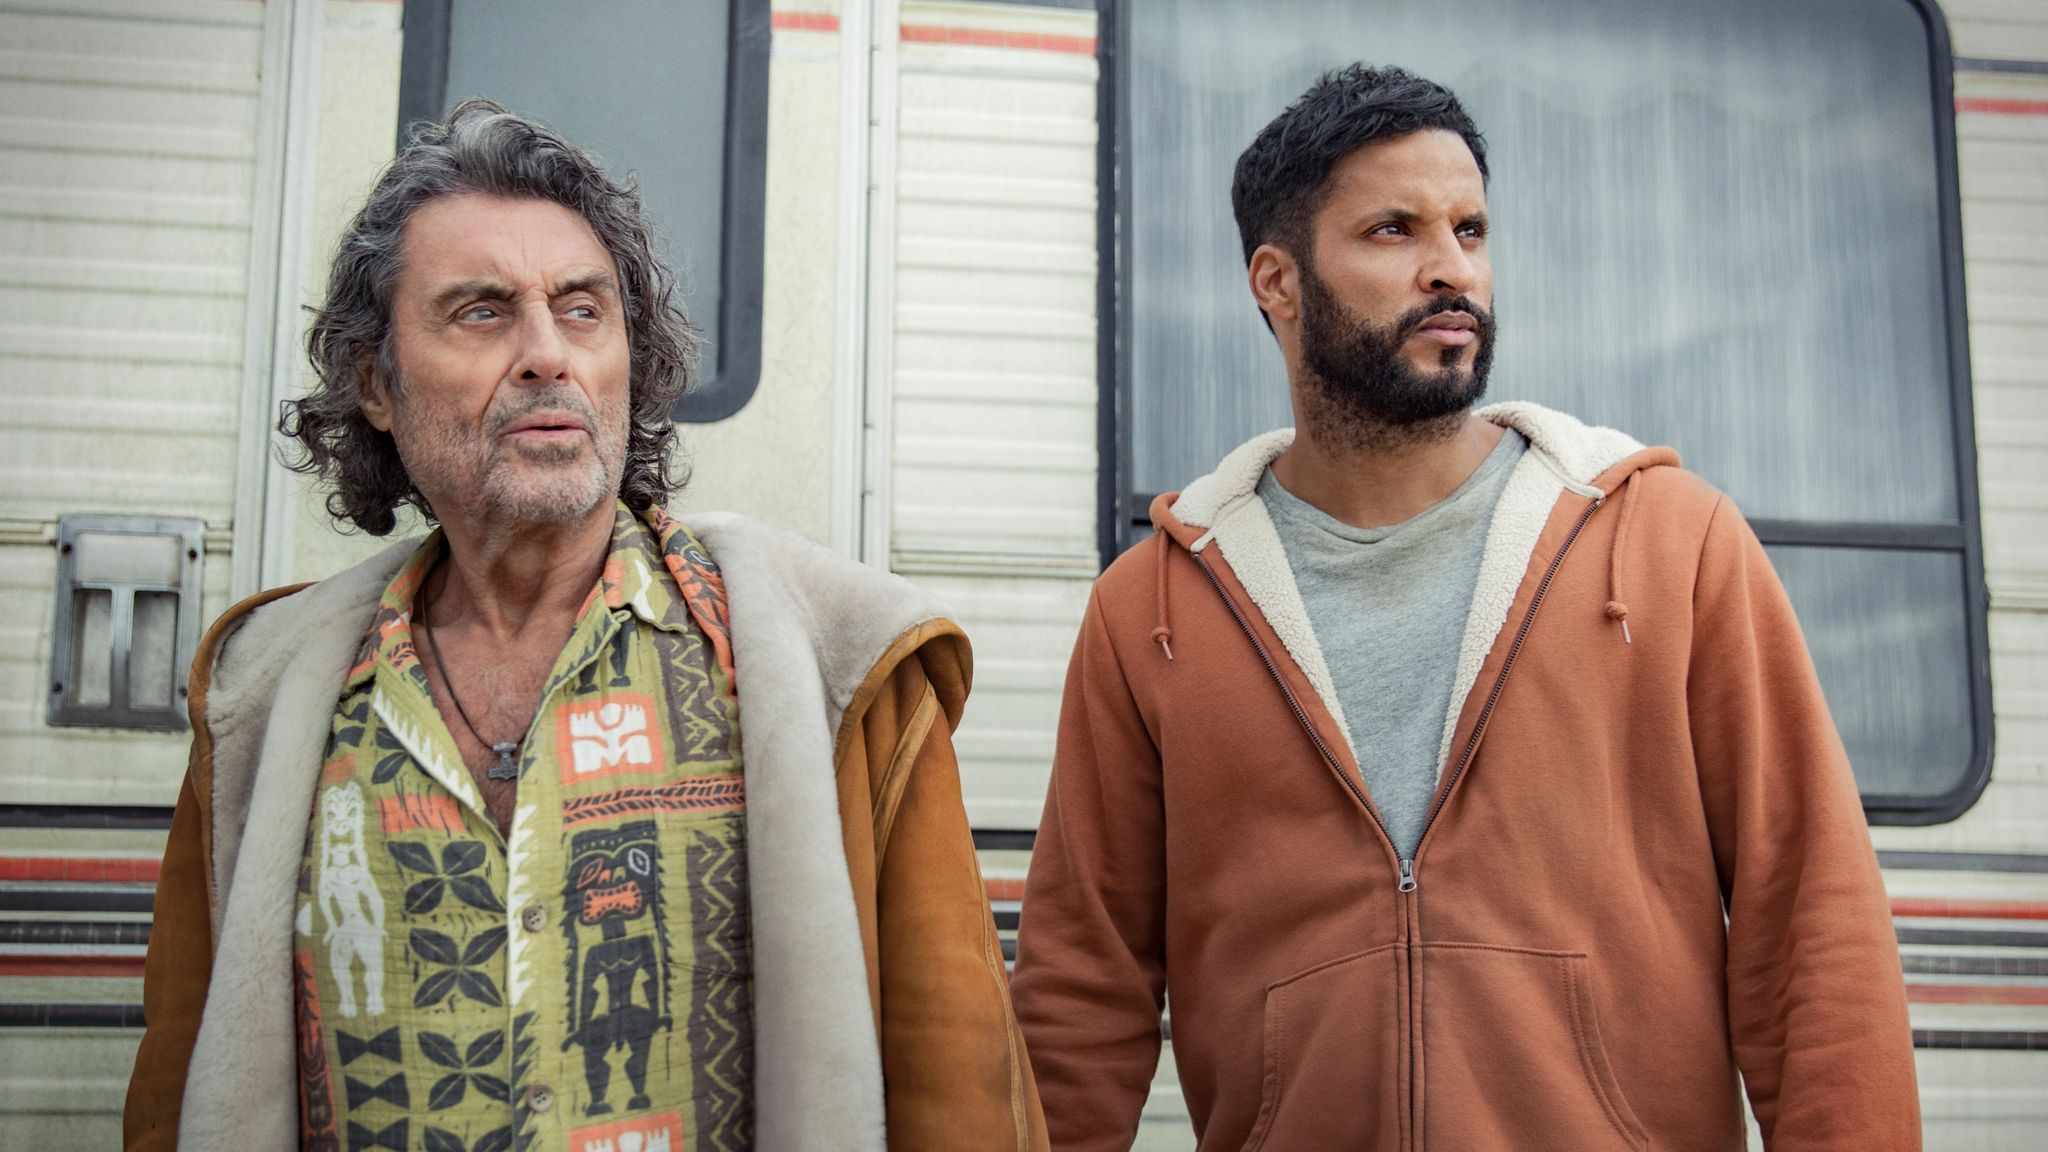 Ian McShane and Ricky Whittle in American Gods. Pic: Prime Video